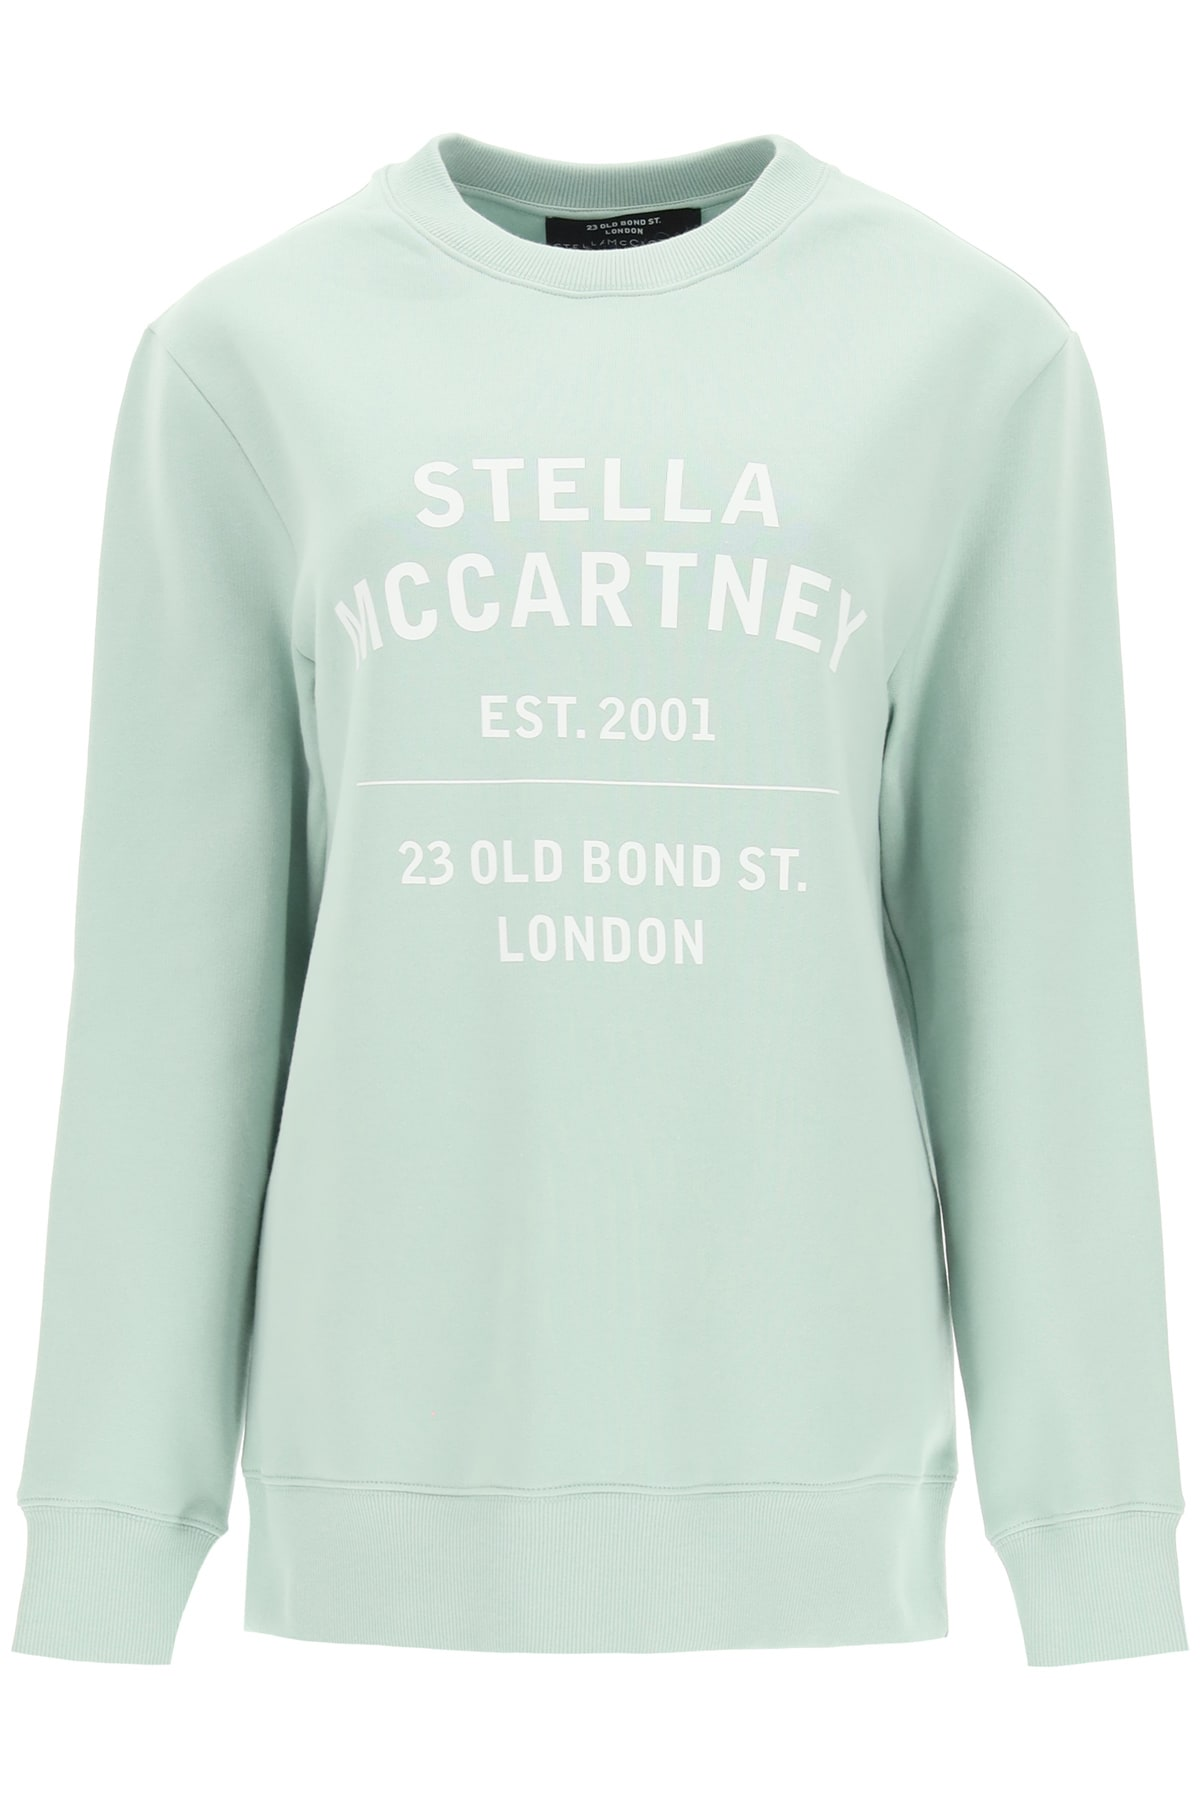 Stella Mccartney 23 OLD BOND STREET CREWNECK SWEATSHIRT